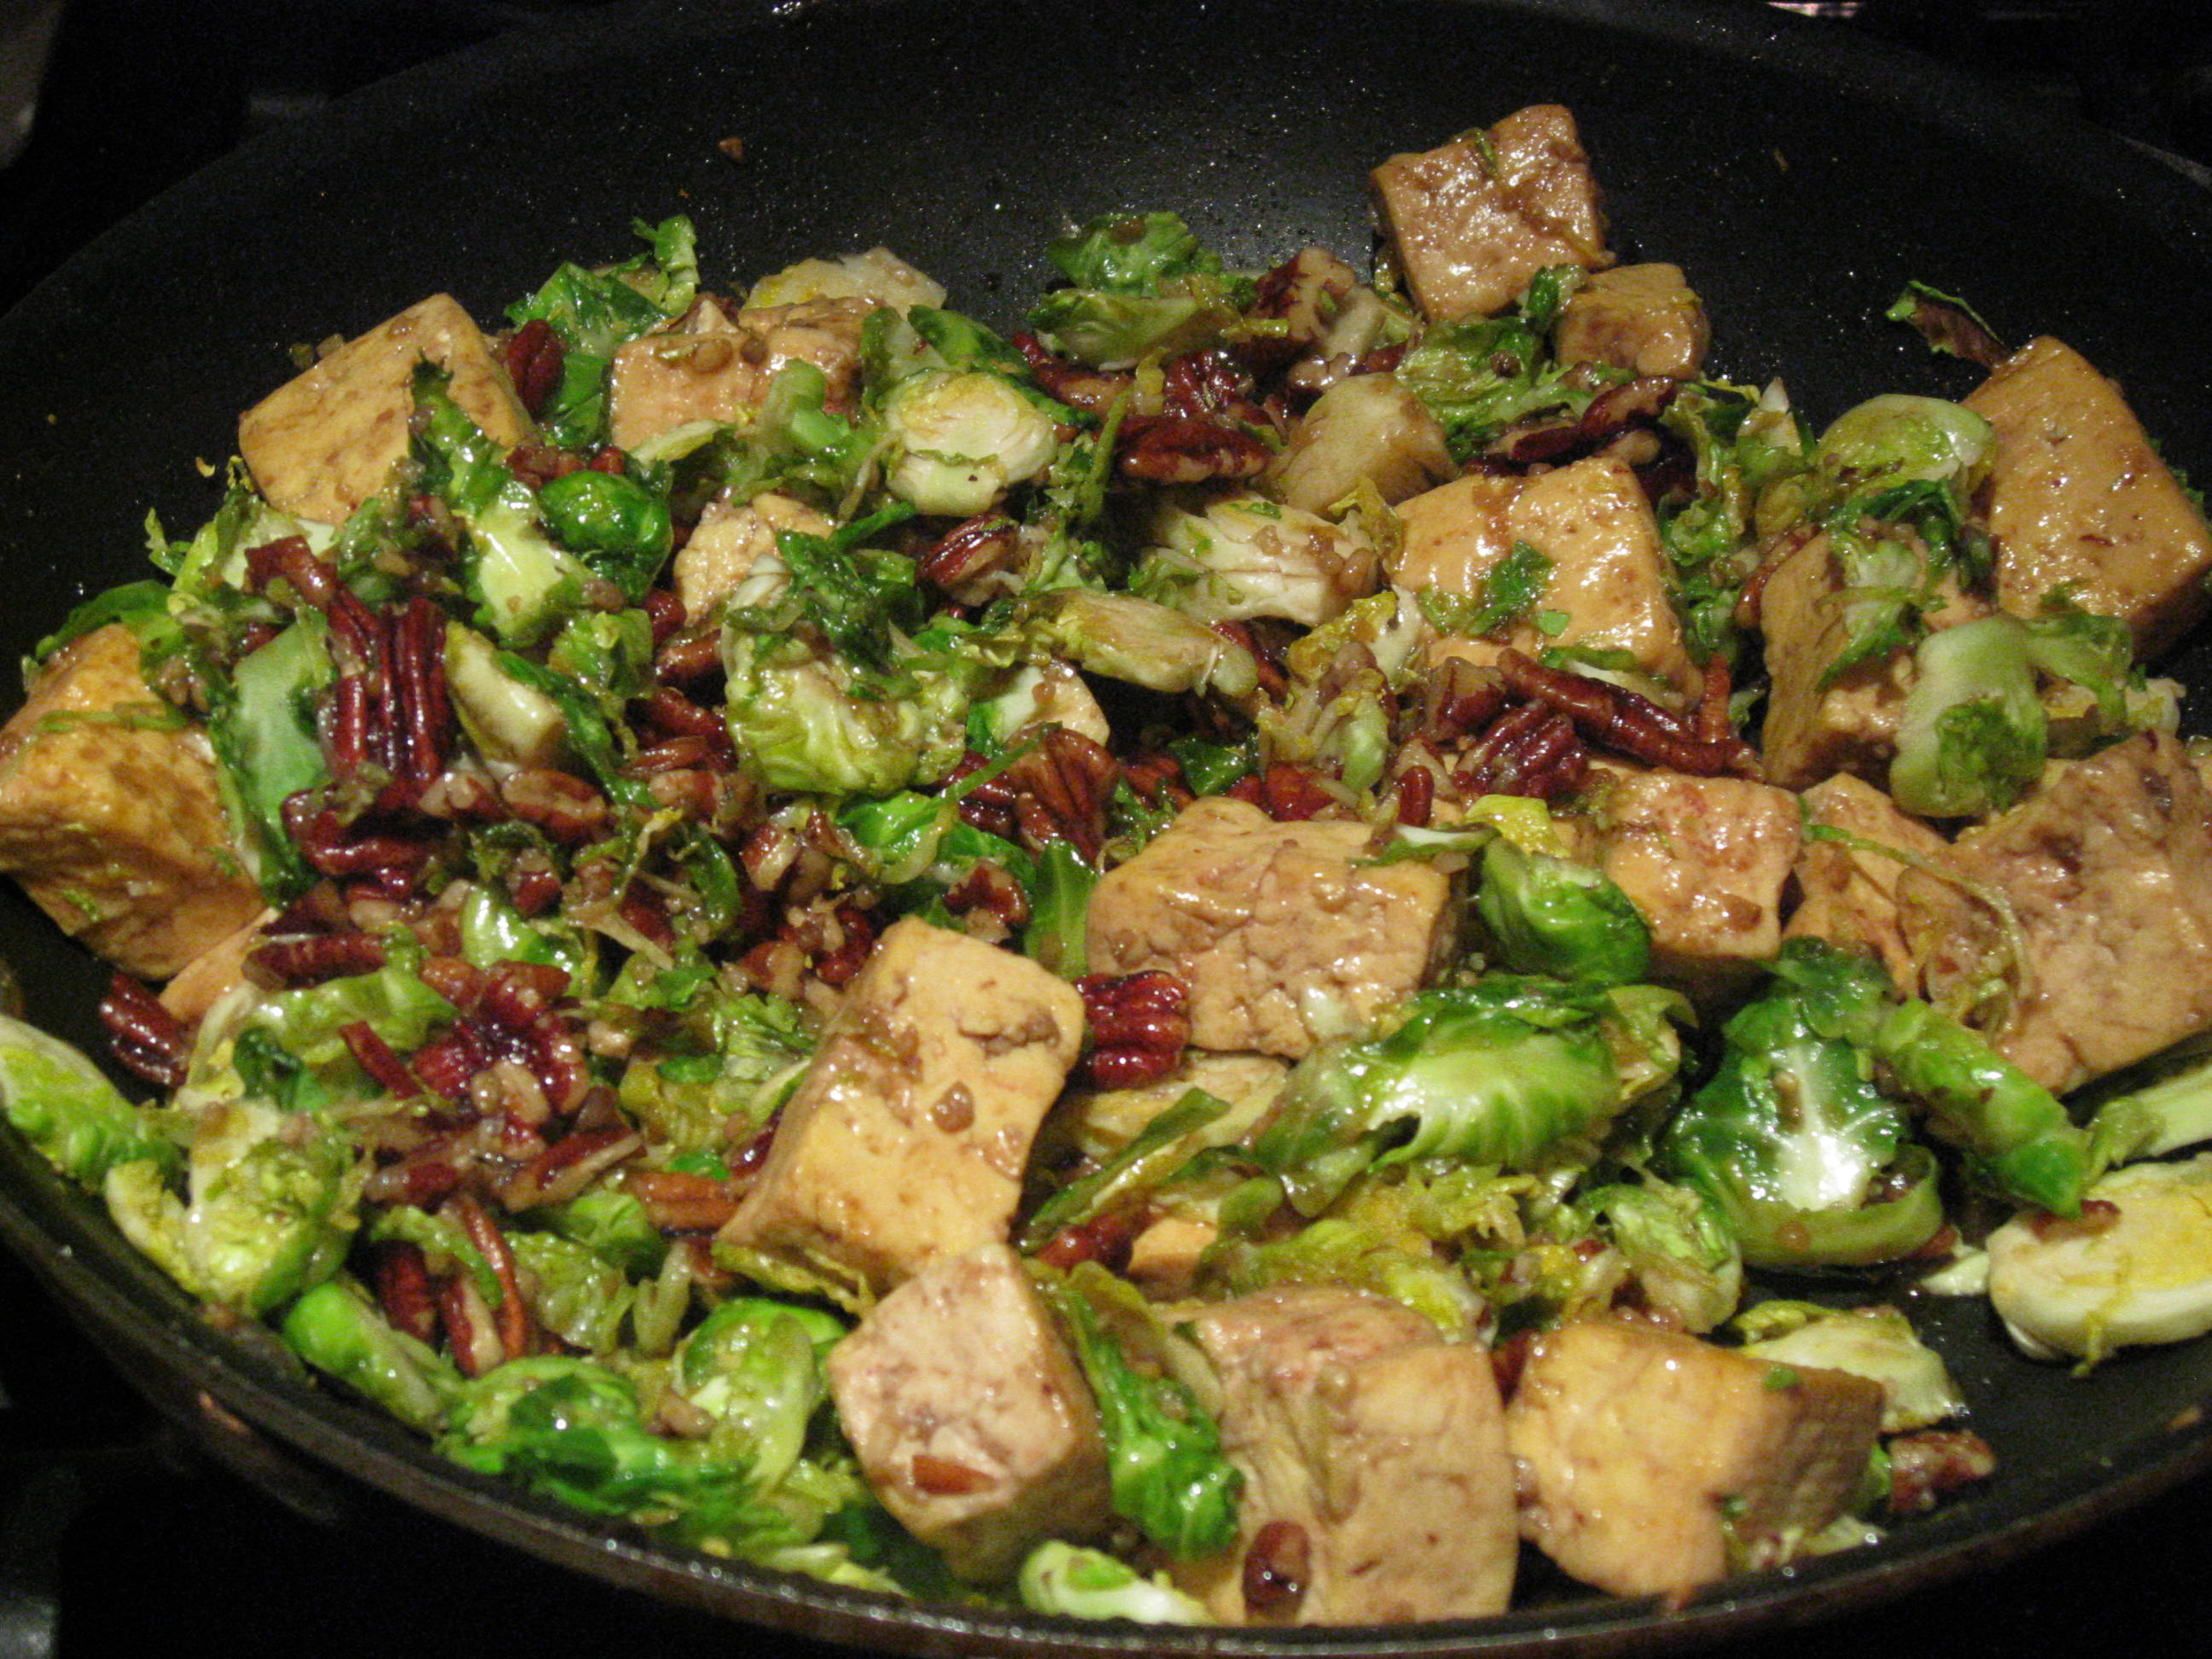 ... tofu tofu with brussels sprouts caramelized tofu and brussel